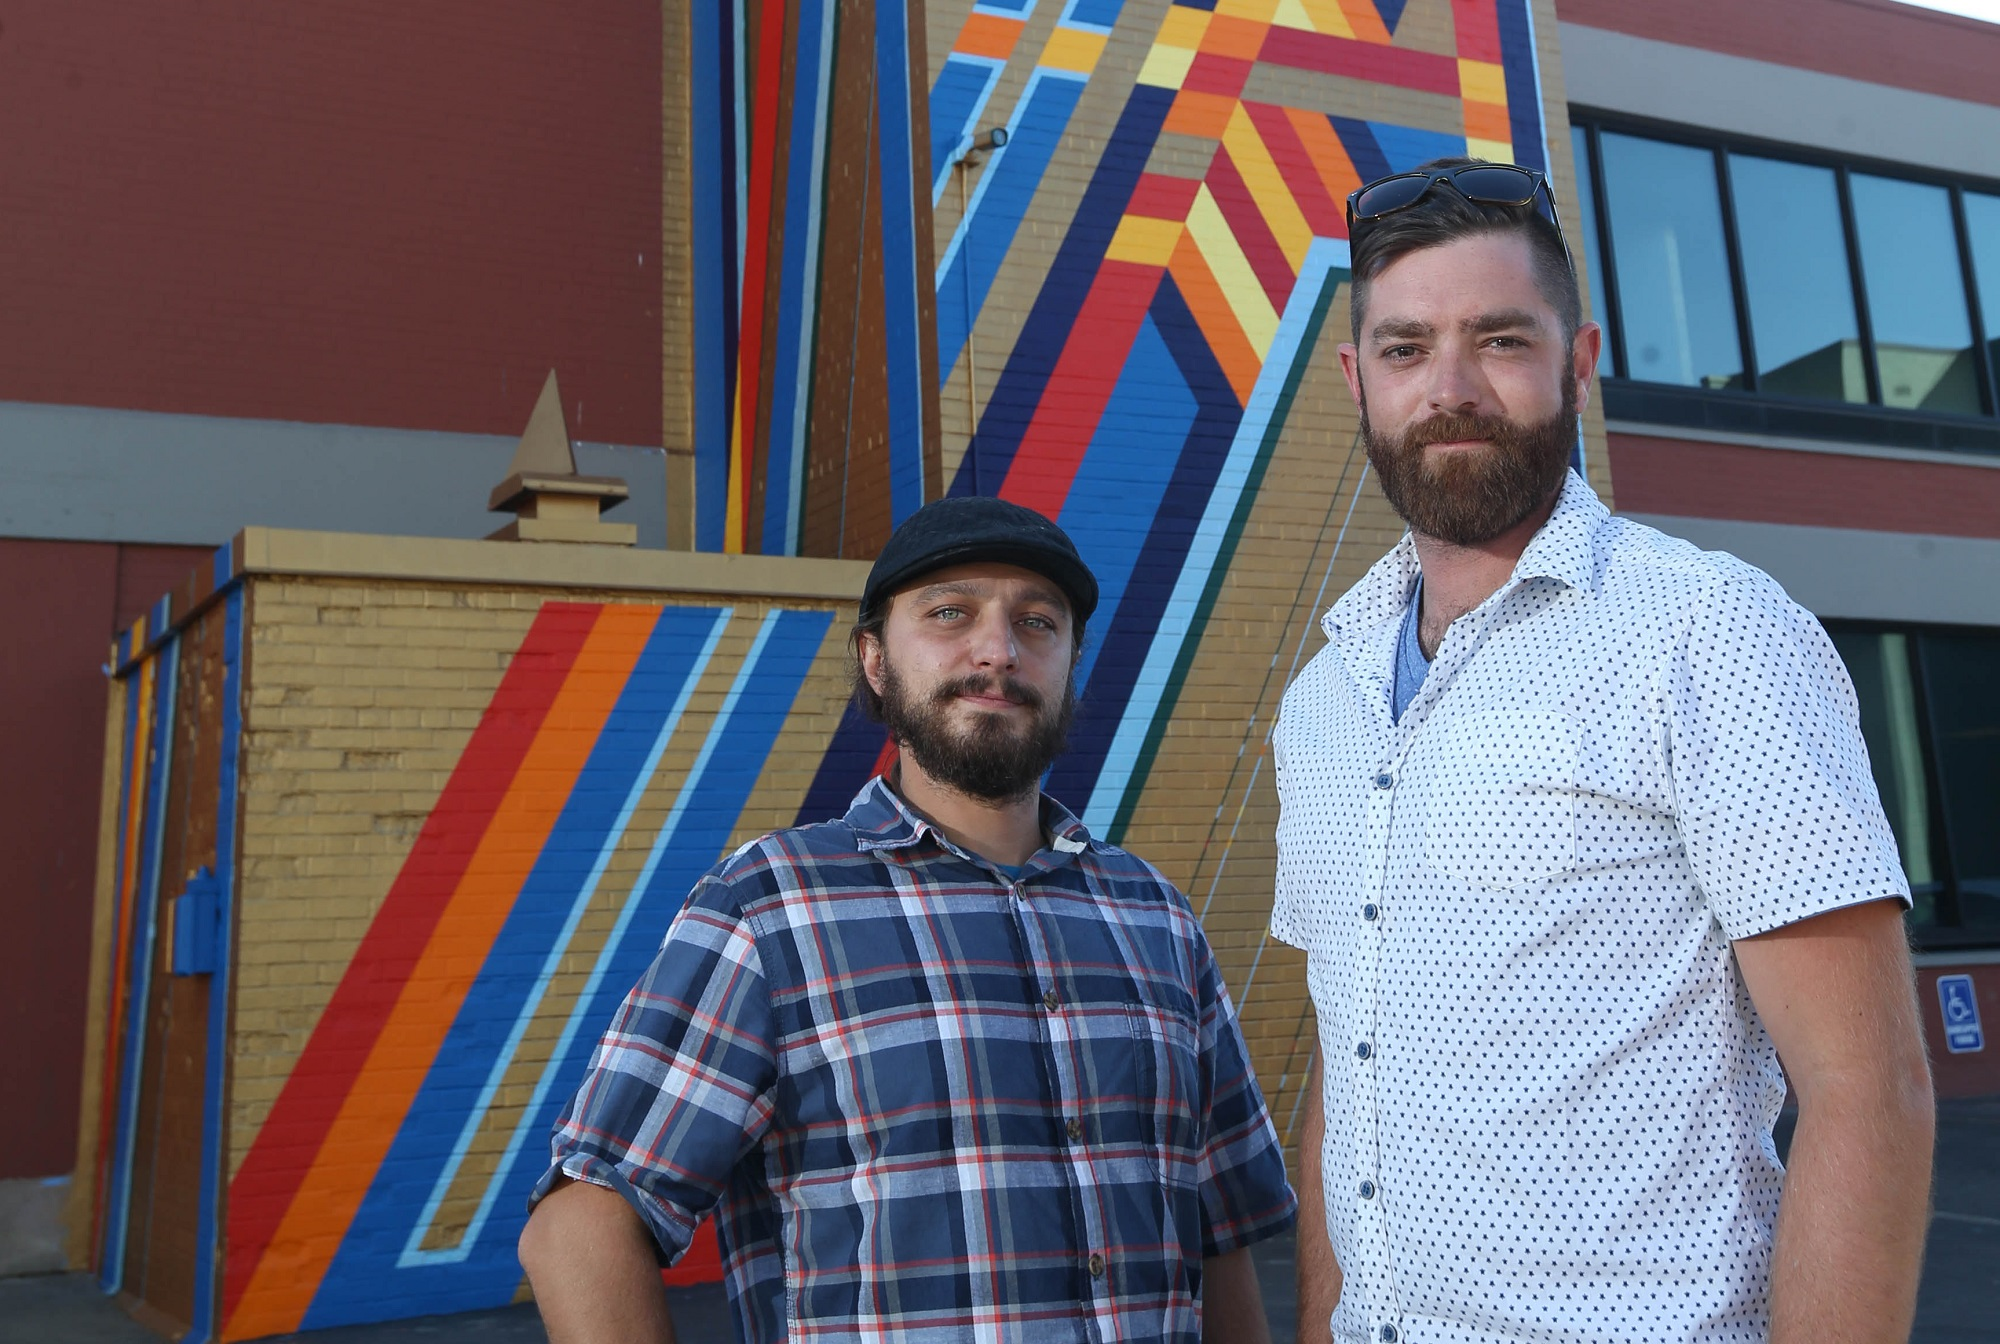 Mural artists Christopher Michael Kameck, left, and Nicholas Conrad Miller – collectively known as Team Razor Wire – just finished their geometric style Tower of Power at 45 Jewett Pkwy. (Sharon Cantillon/Buffalo News)